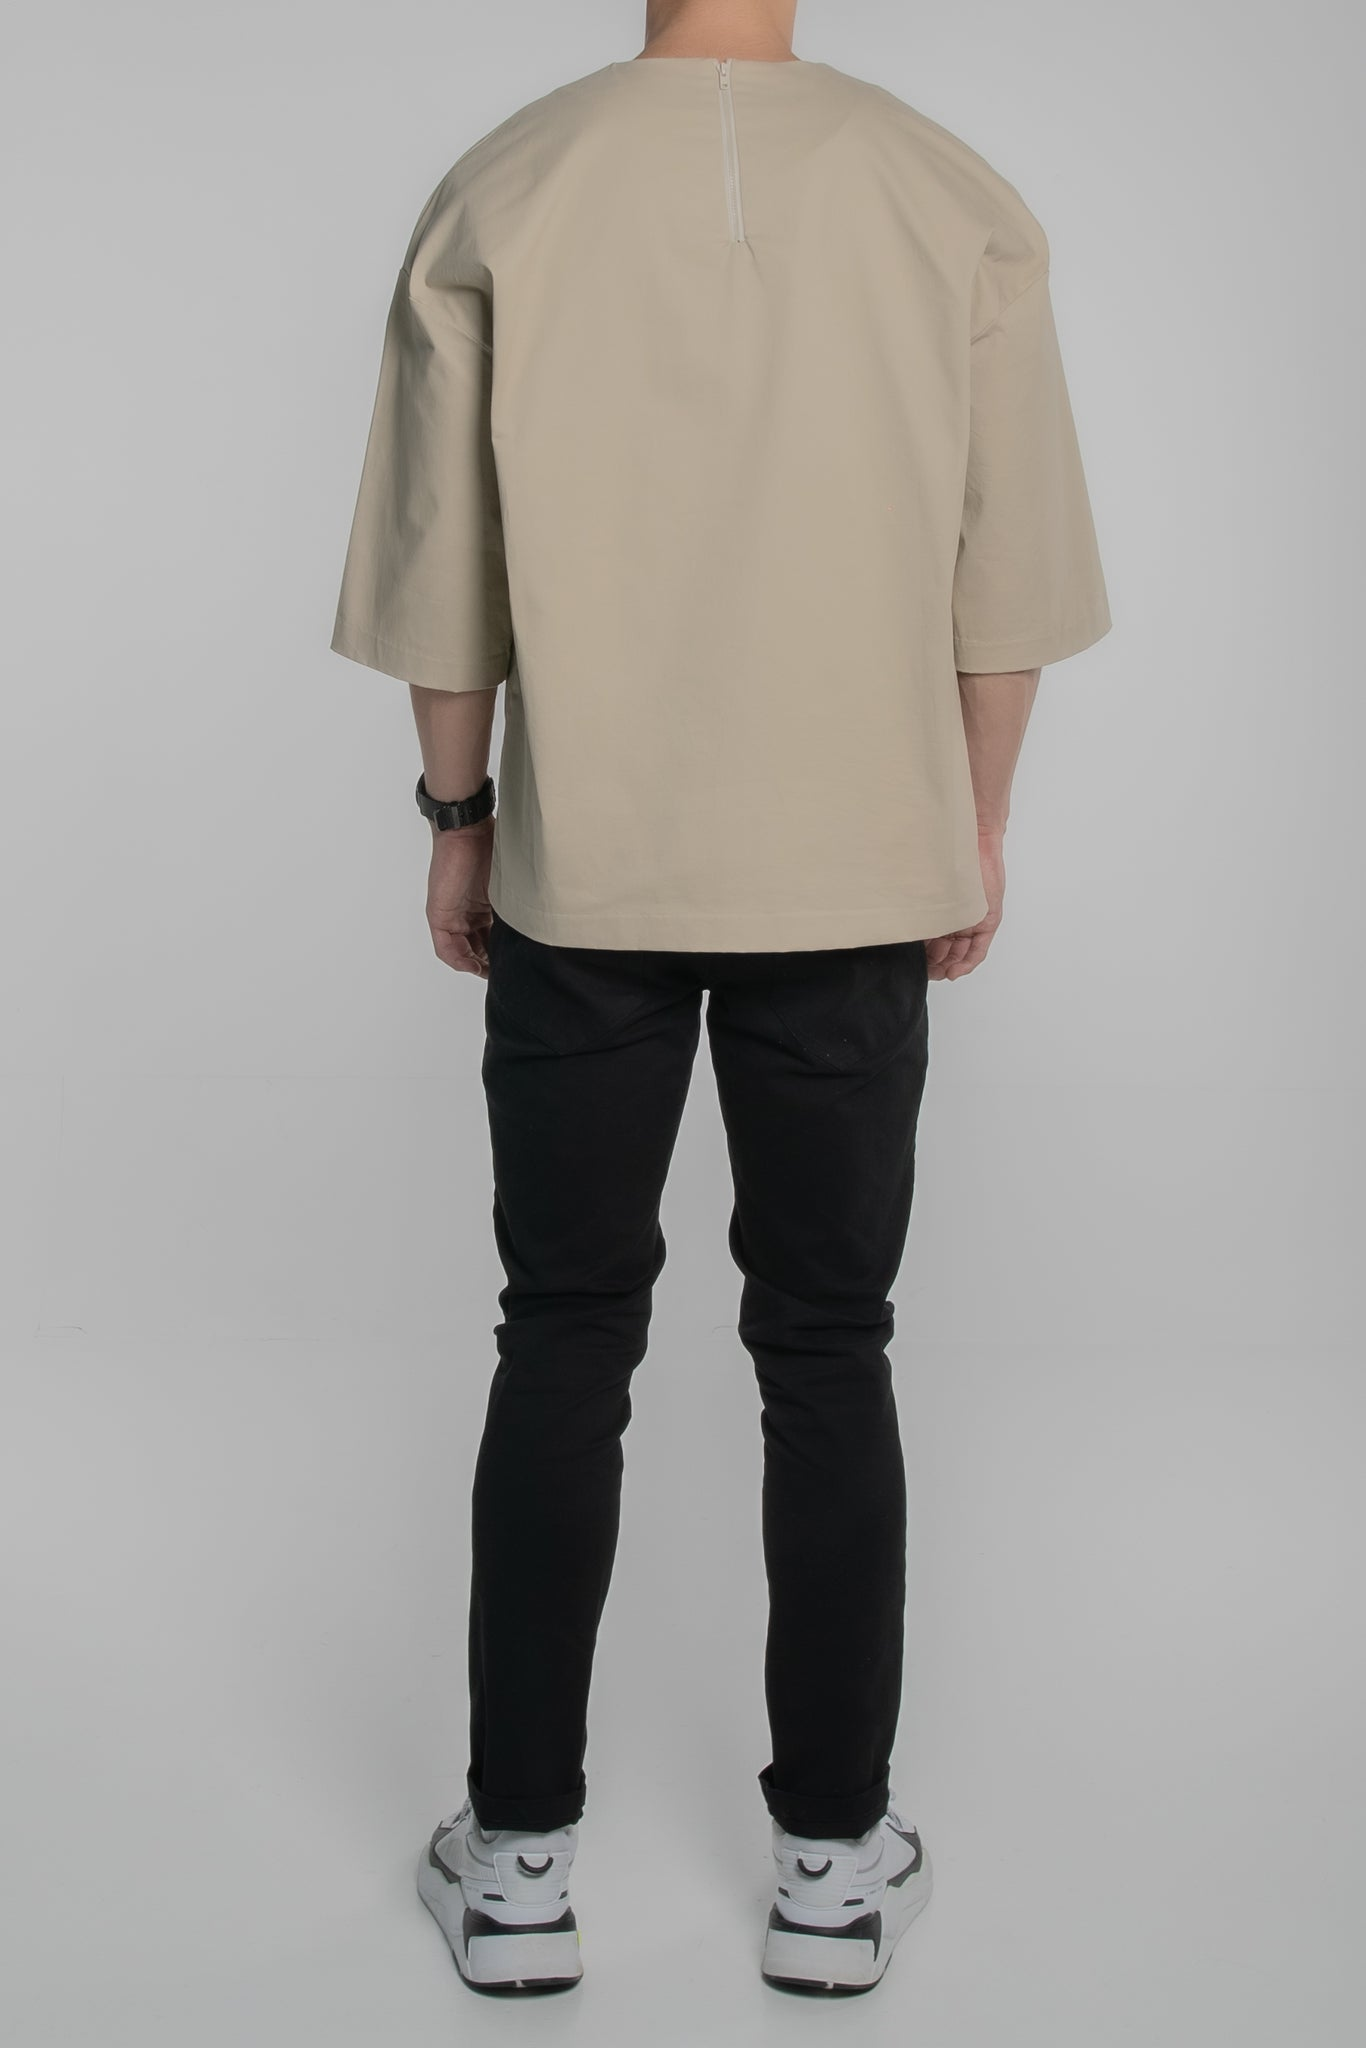 3/4 Jumbo Pocket Tee (Beige)